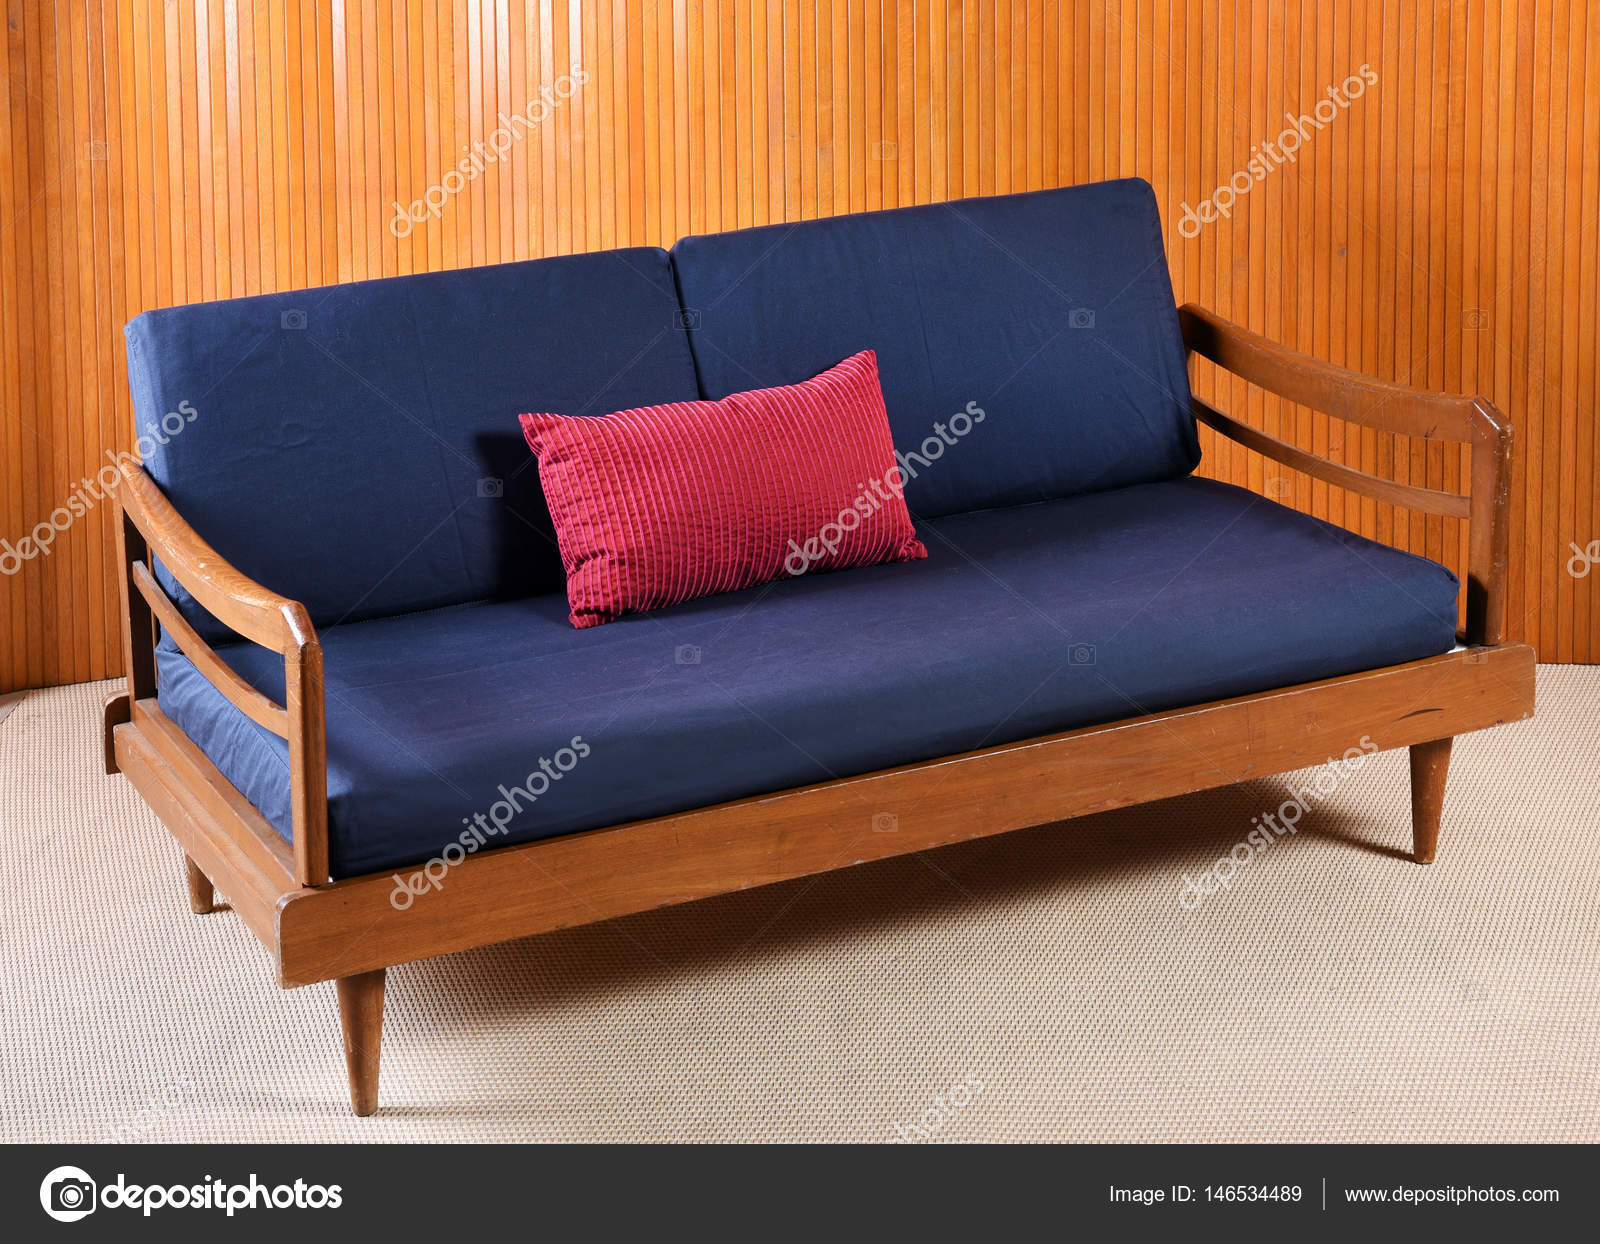 Retro Sofa With Navy Blue Cushions In Living Room Stock